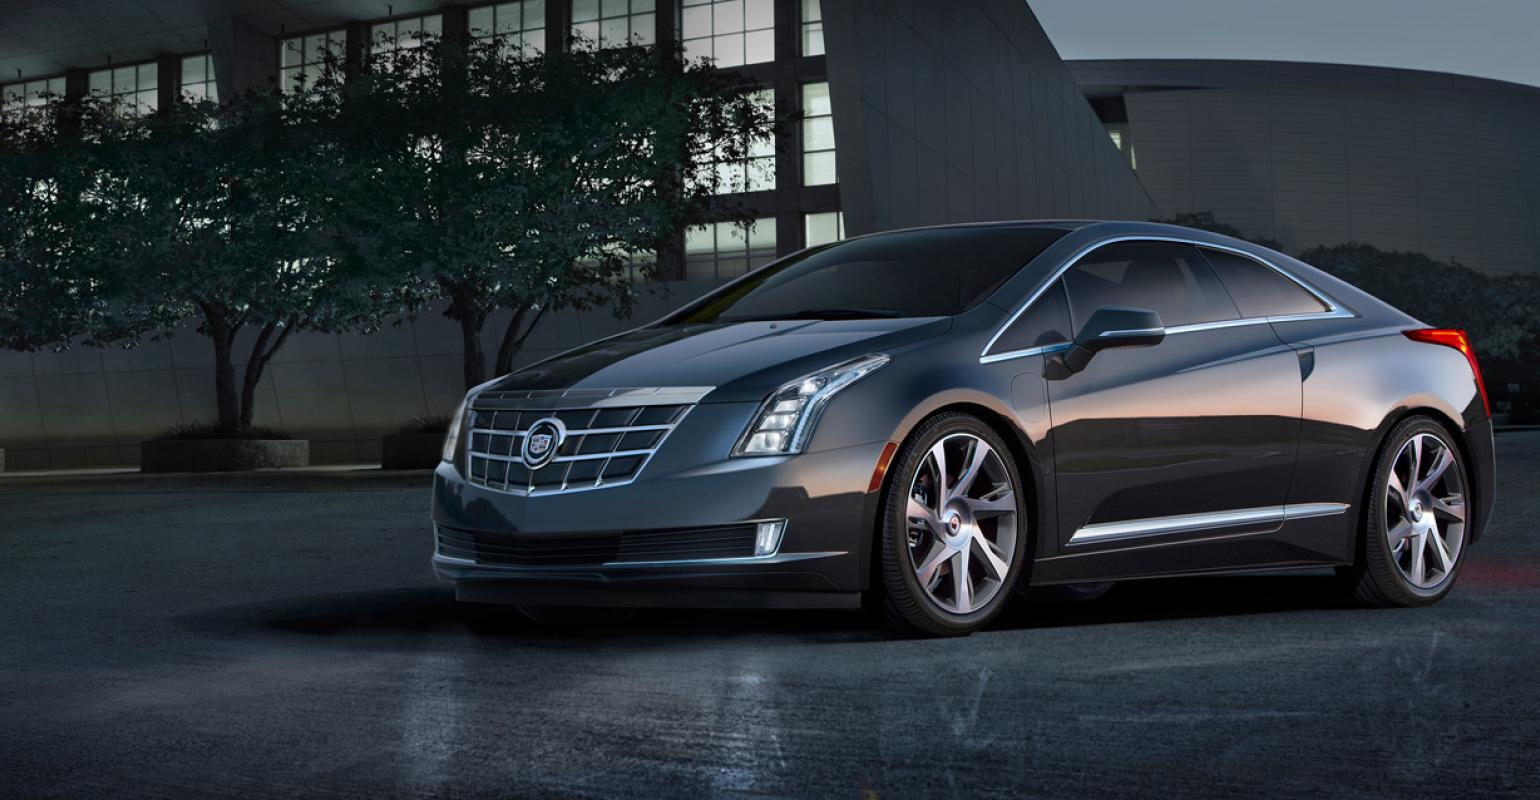 Gm Prices Cadillac Elr Electric Vehicle At 75 995